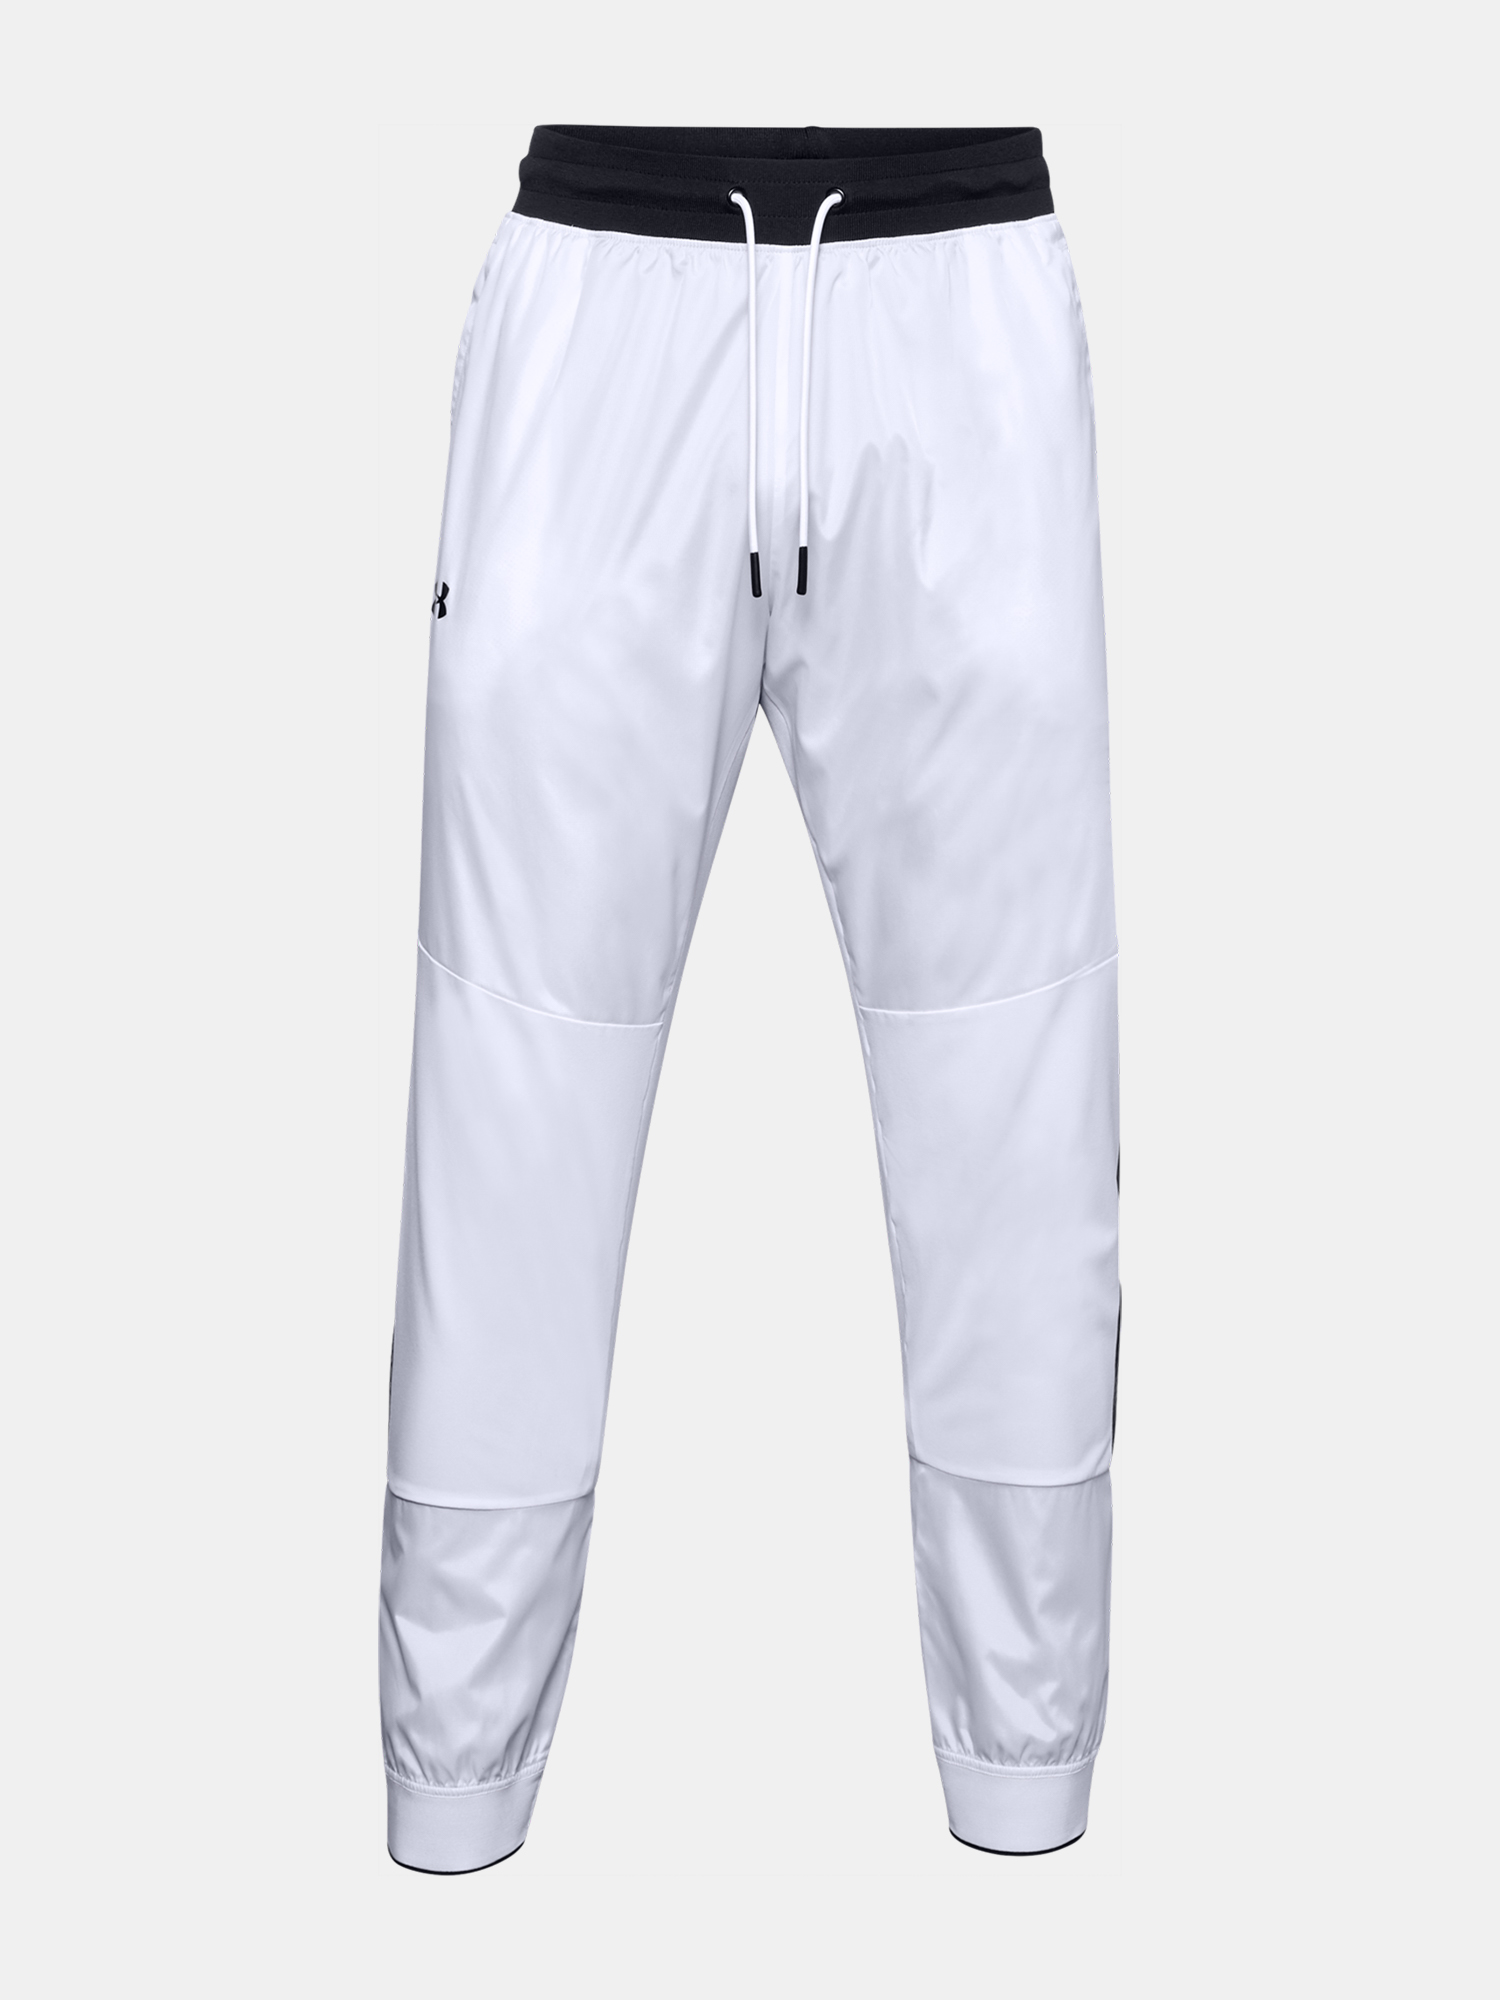 Tepláky Under Armour  Recover Legacy Pant (3)